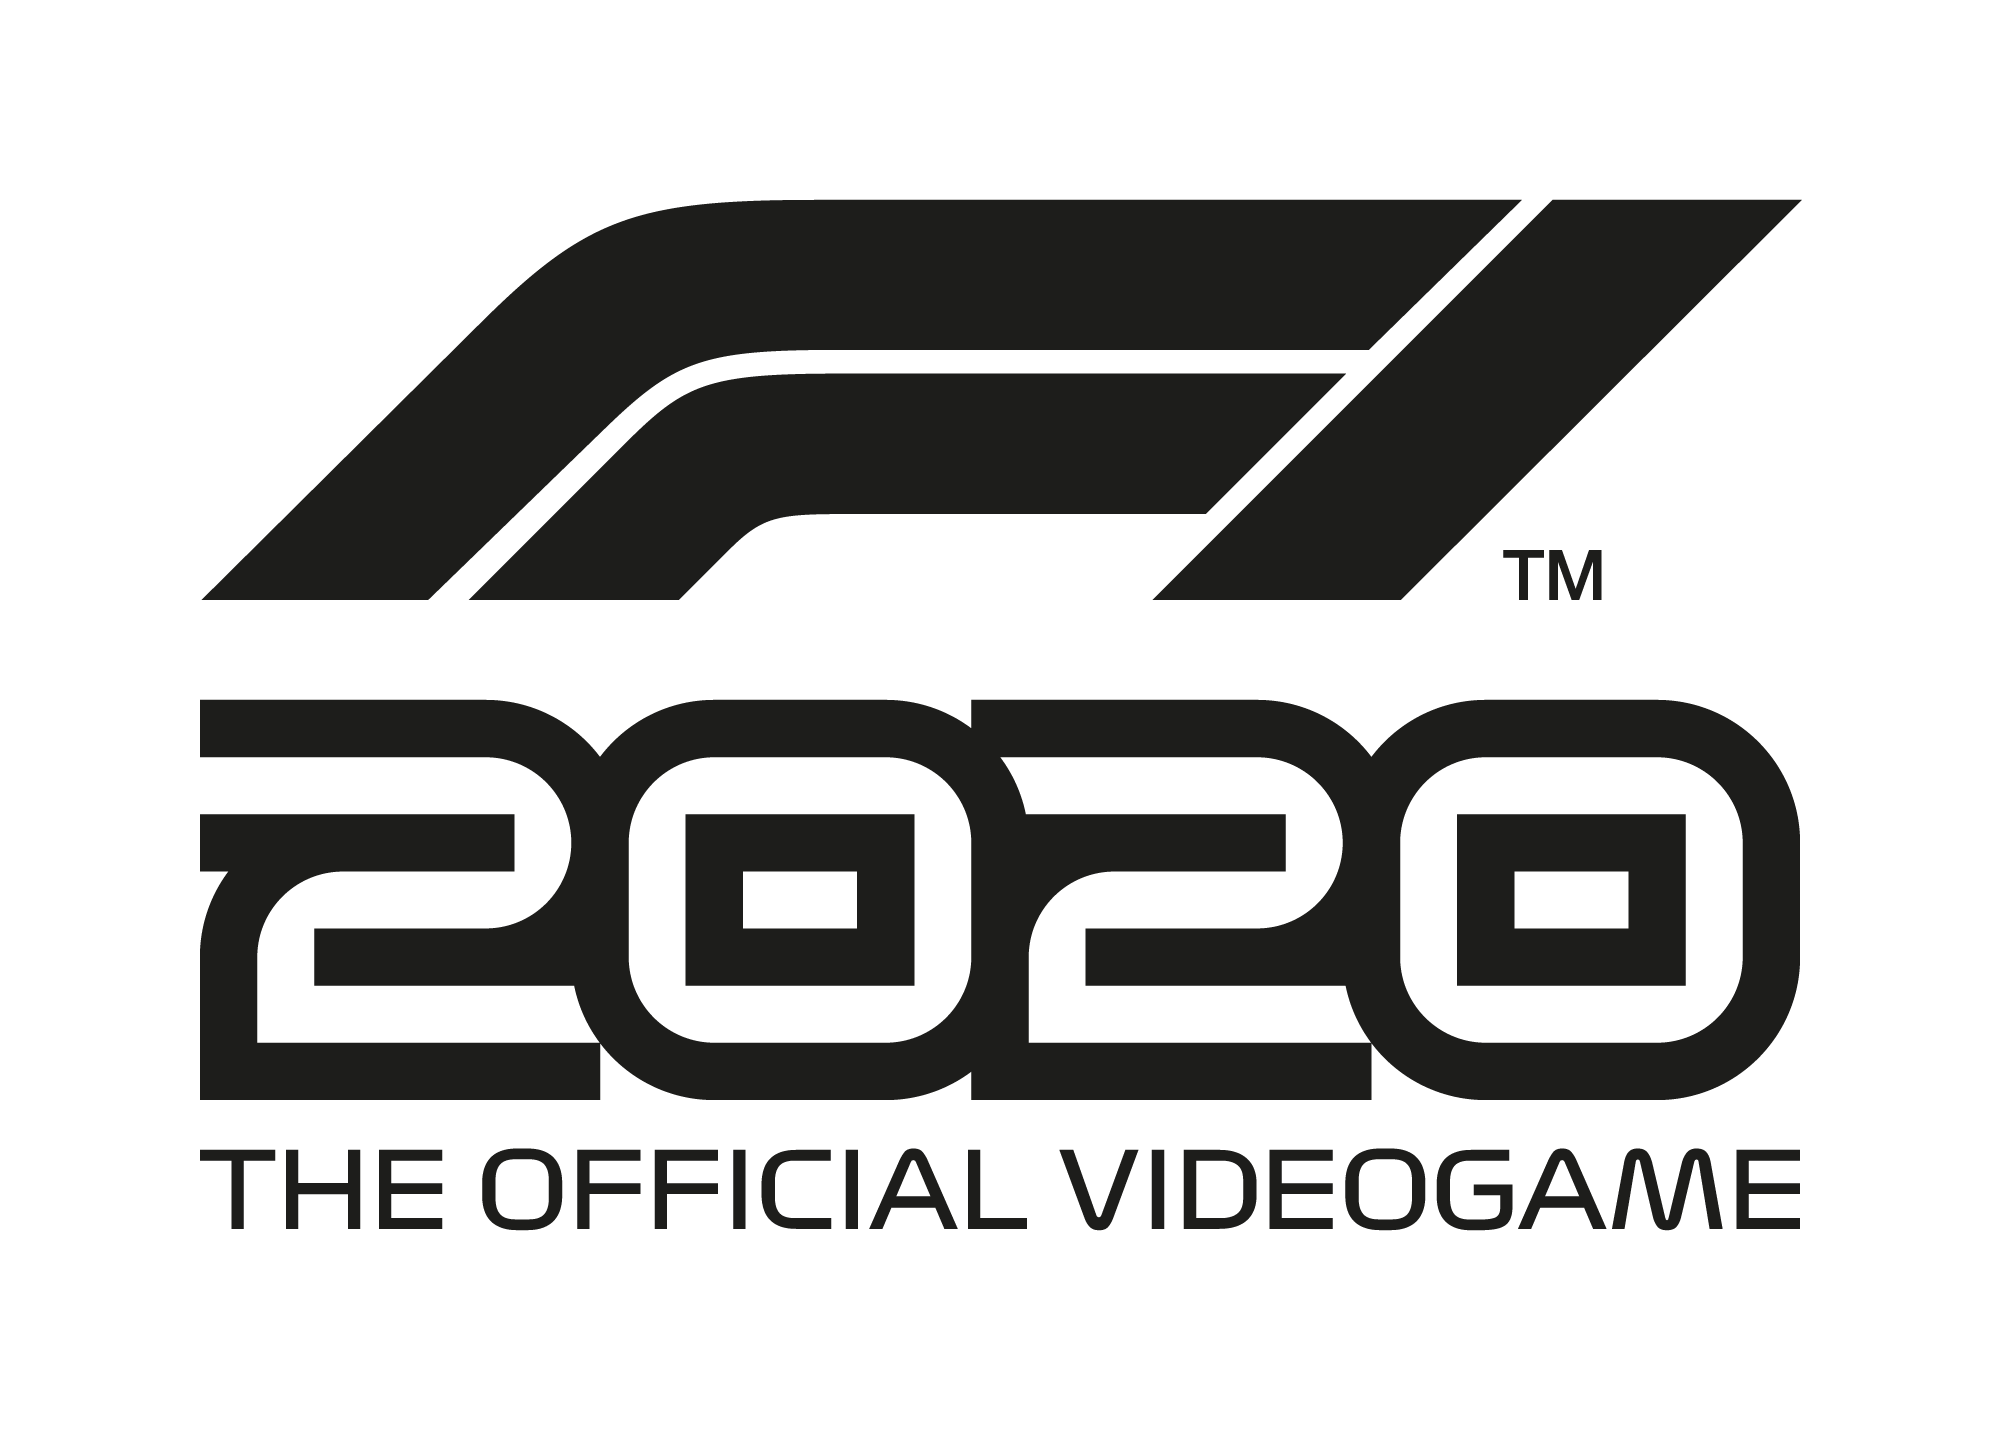 F12020 the official videogame